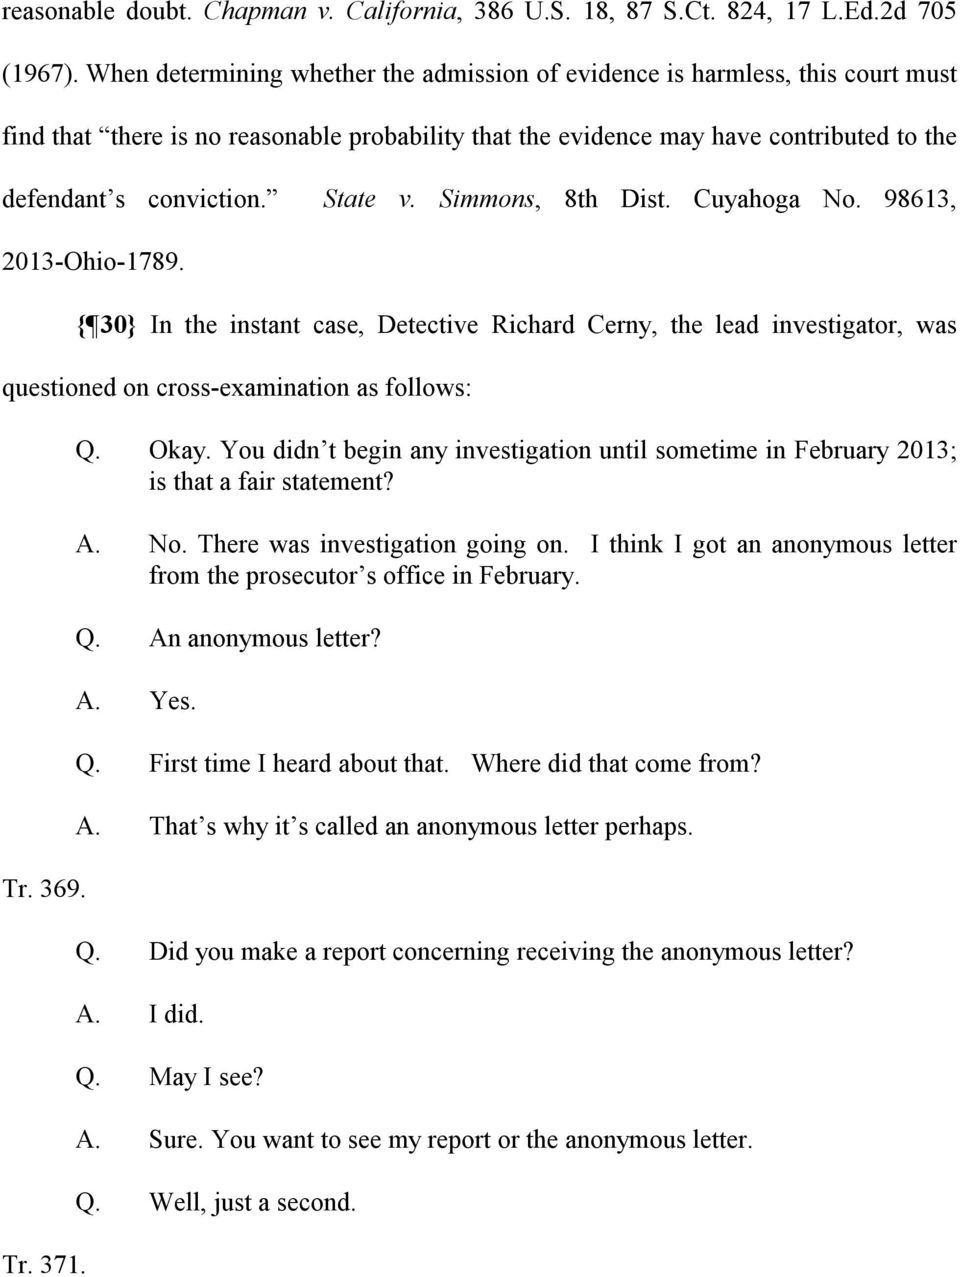 State v. Simmons, 8th Dist. Cuyahoga No. 98613, 2013-Ohio-1789. { 30} In the instant case, Detective Richard Cerny, the lead investigator, was questioned on cross-examination as follows: Tr. 369. Tr. 371.